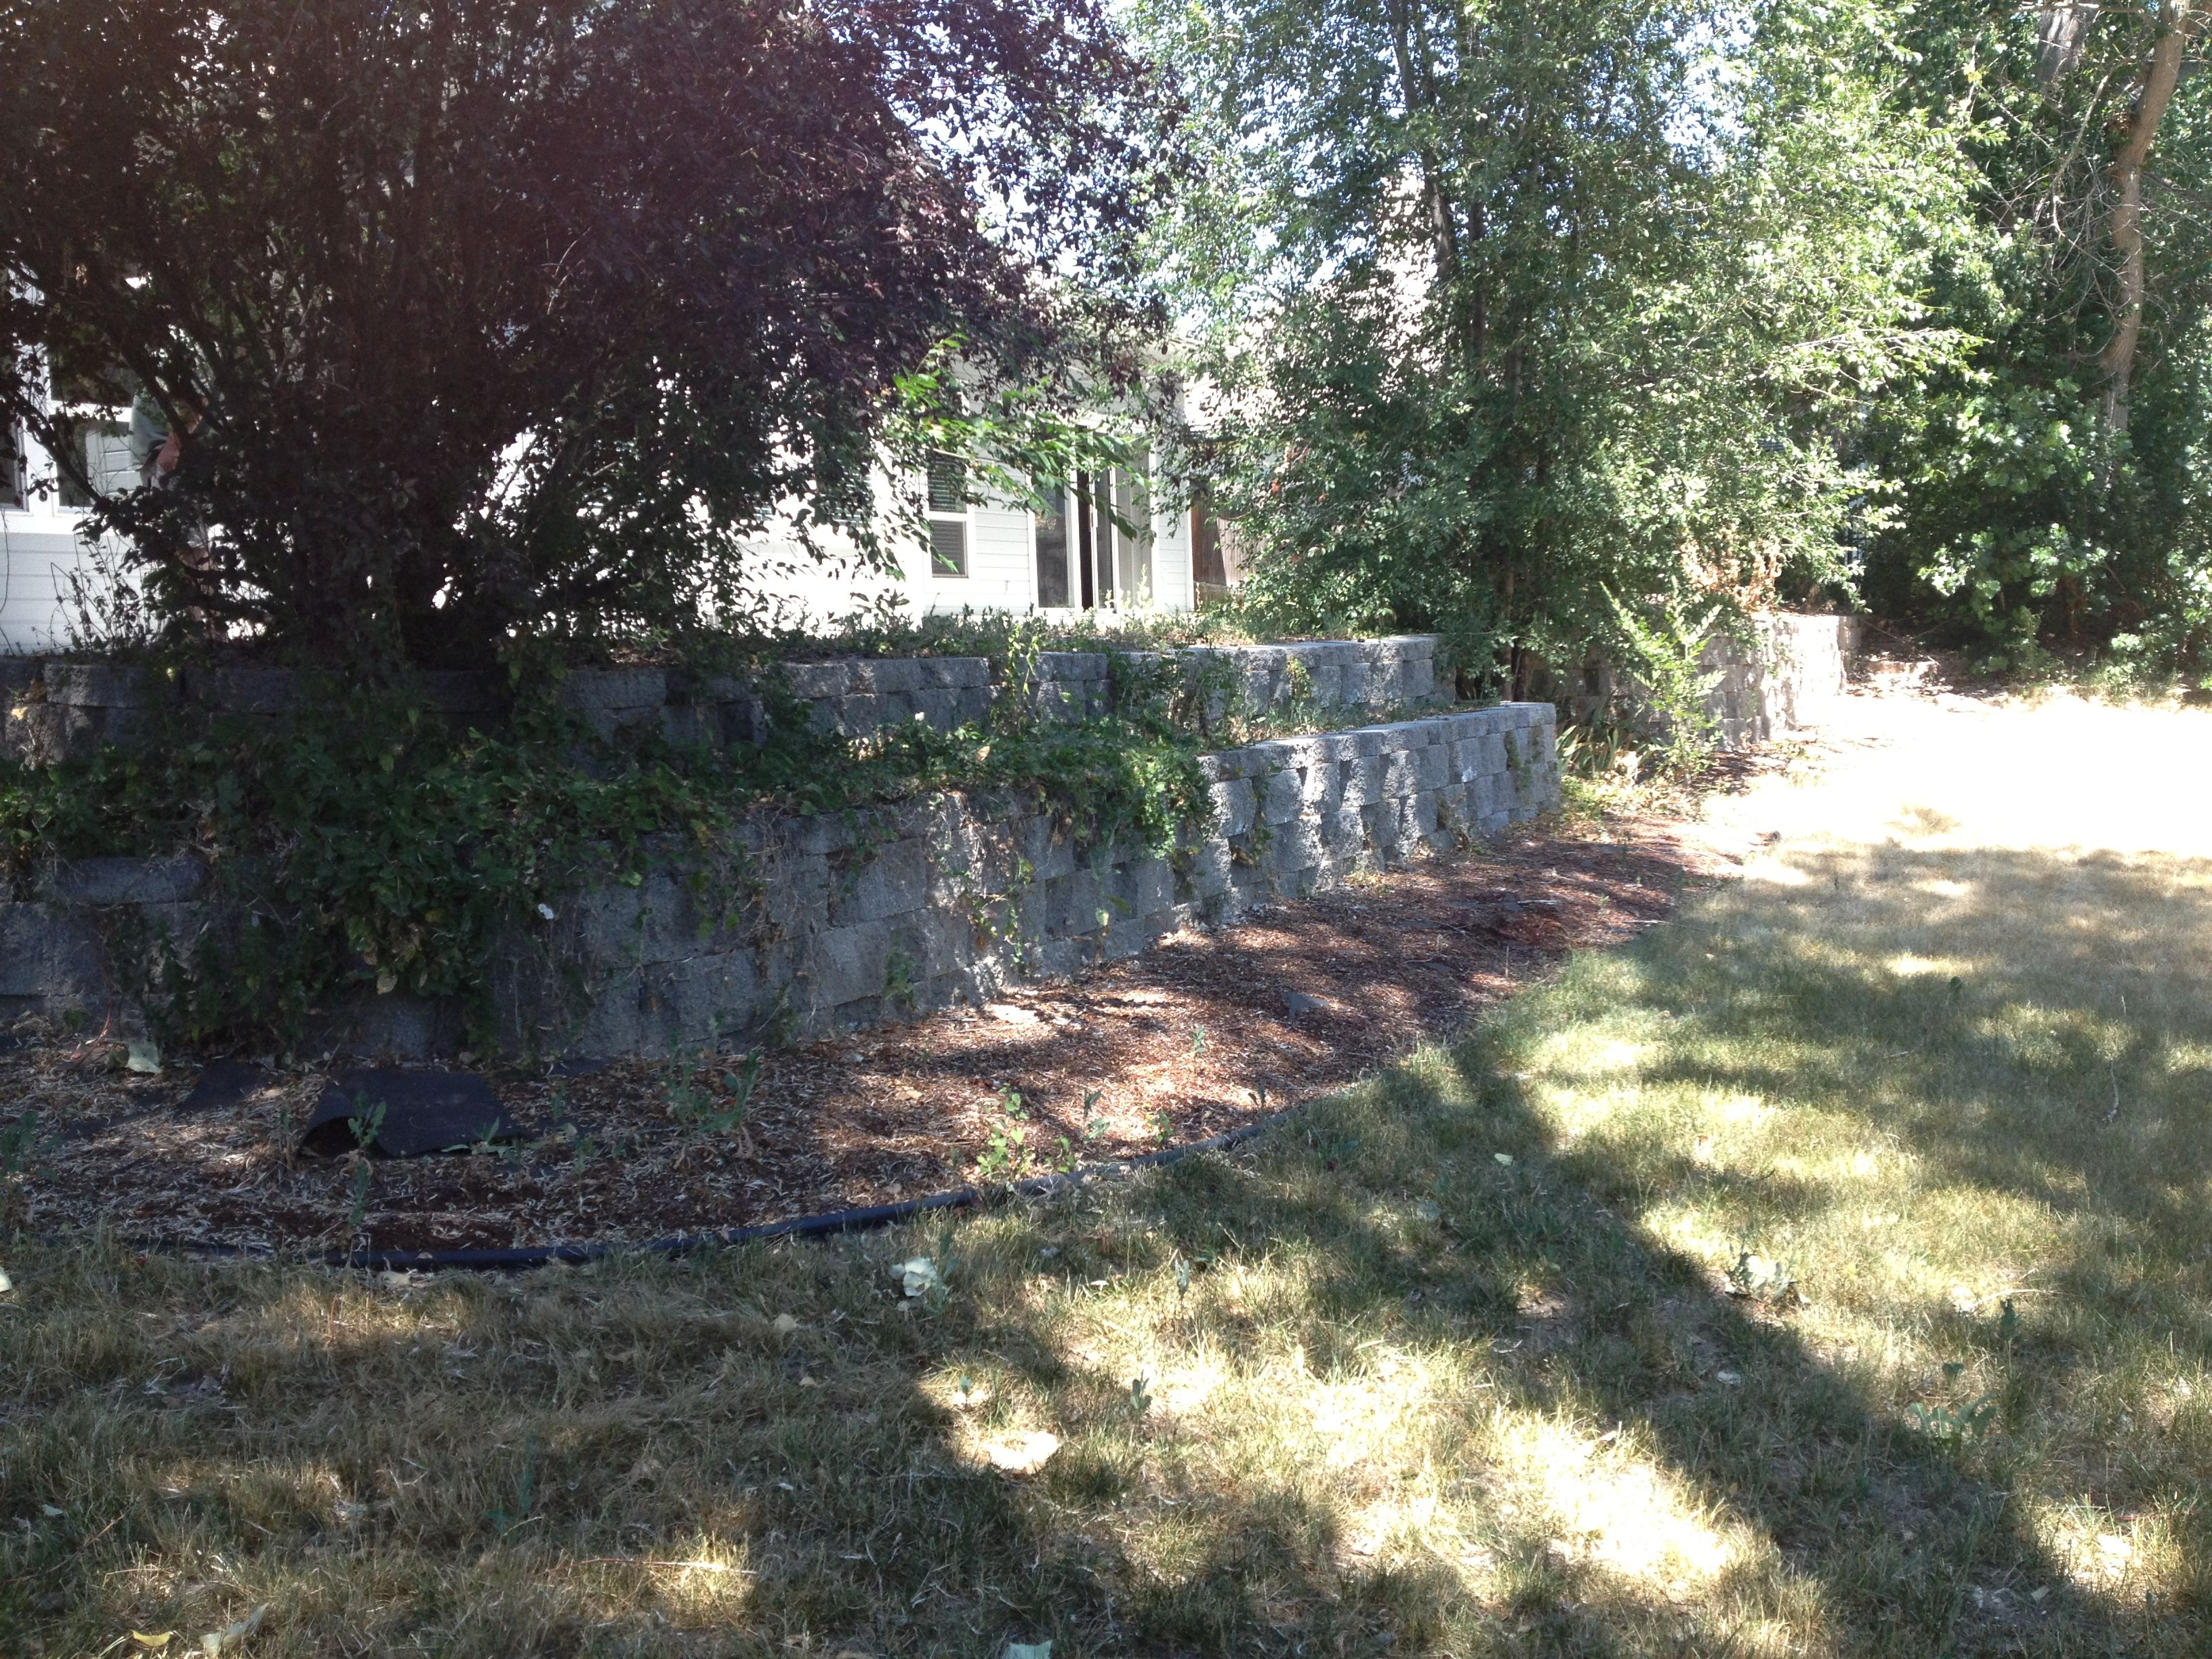 Charming Backyard Screaming With Potential To Be So Lovely   Terraces And Patios  Galore!